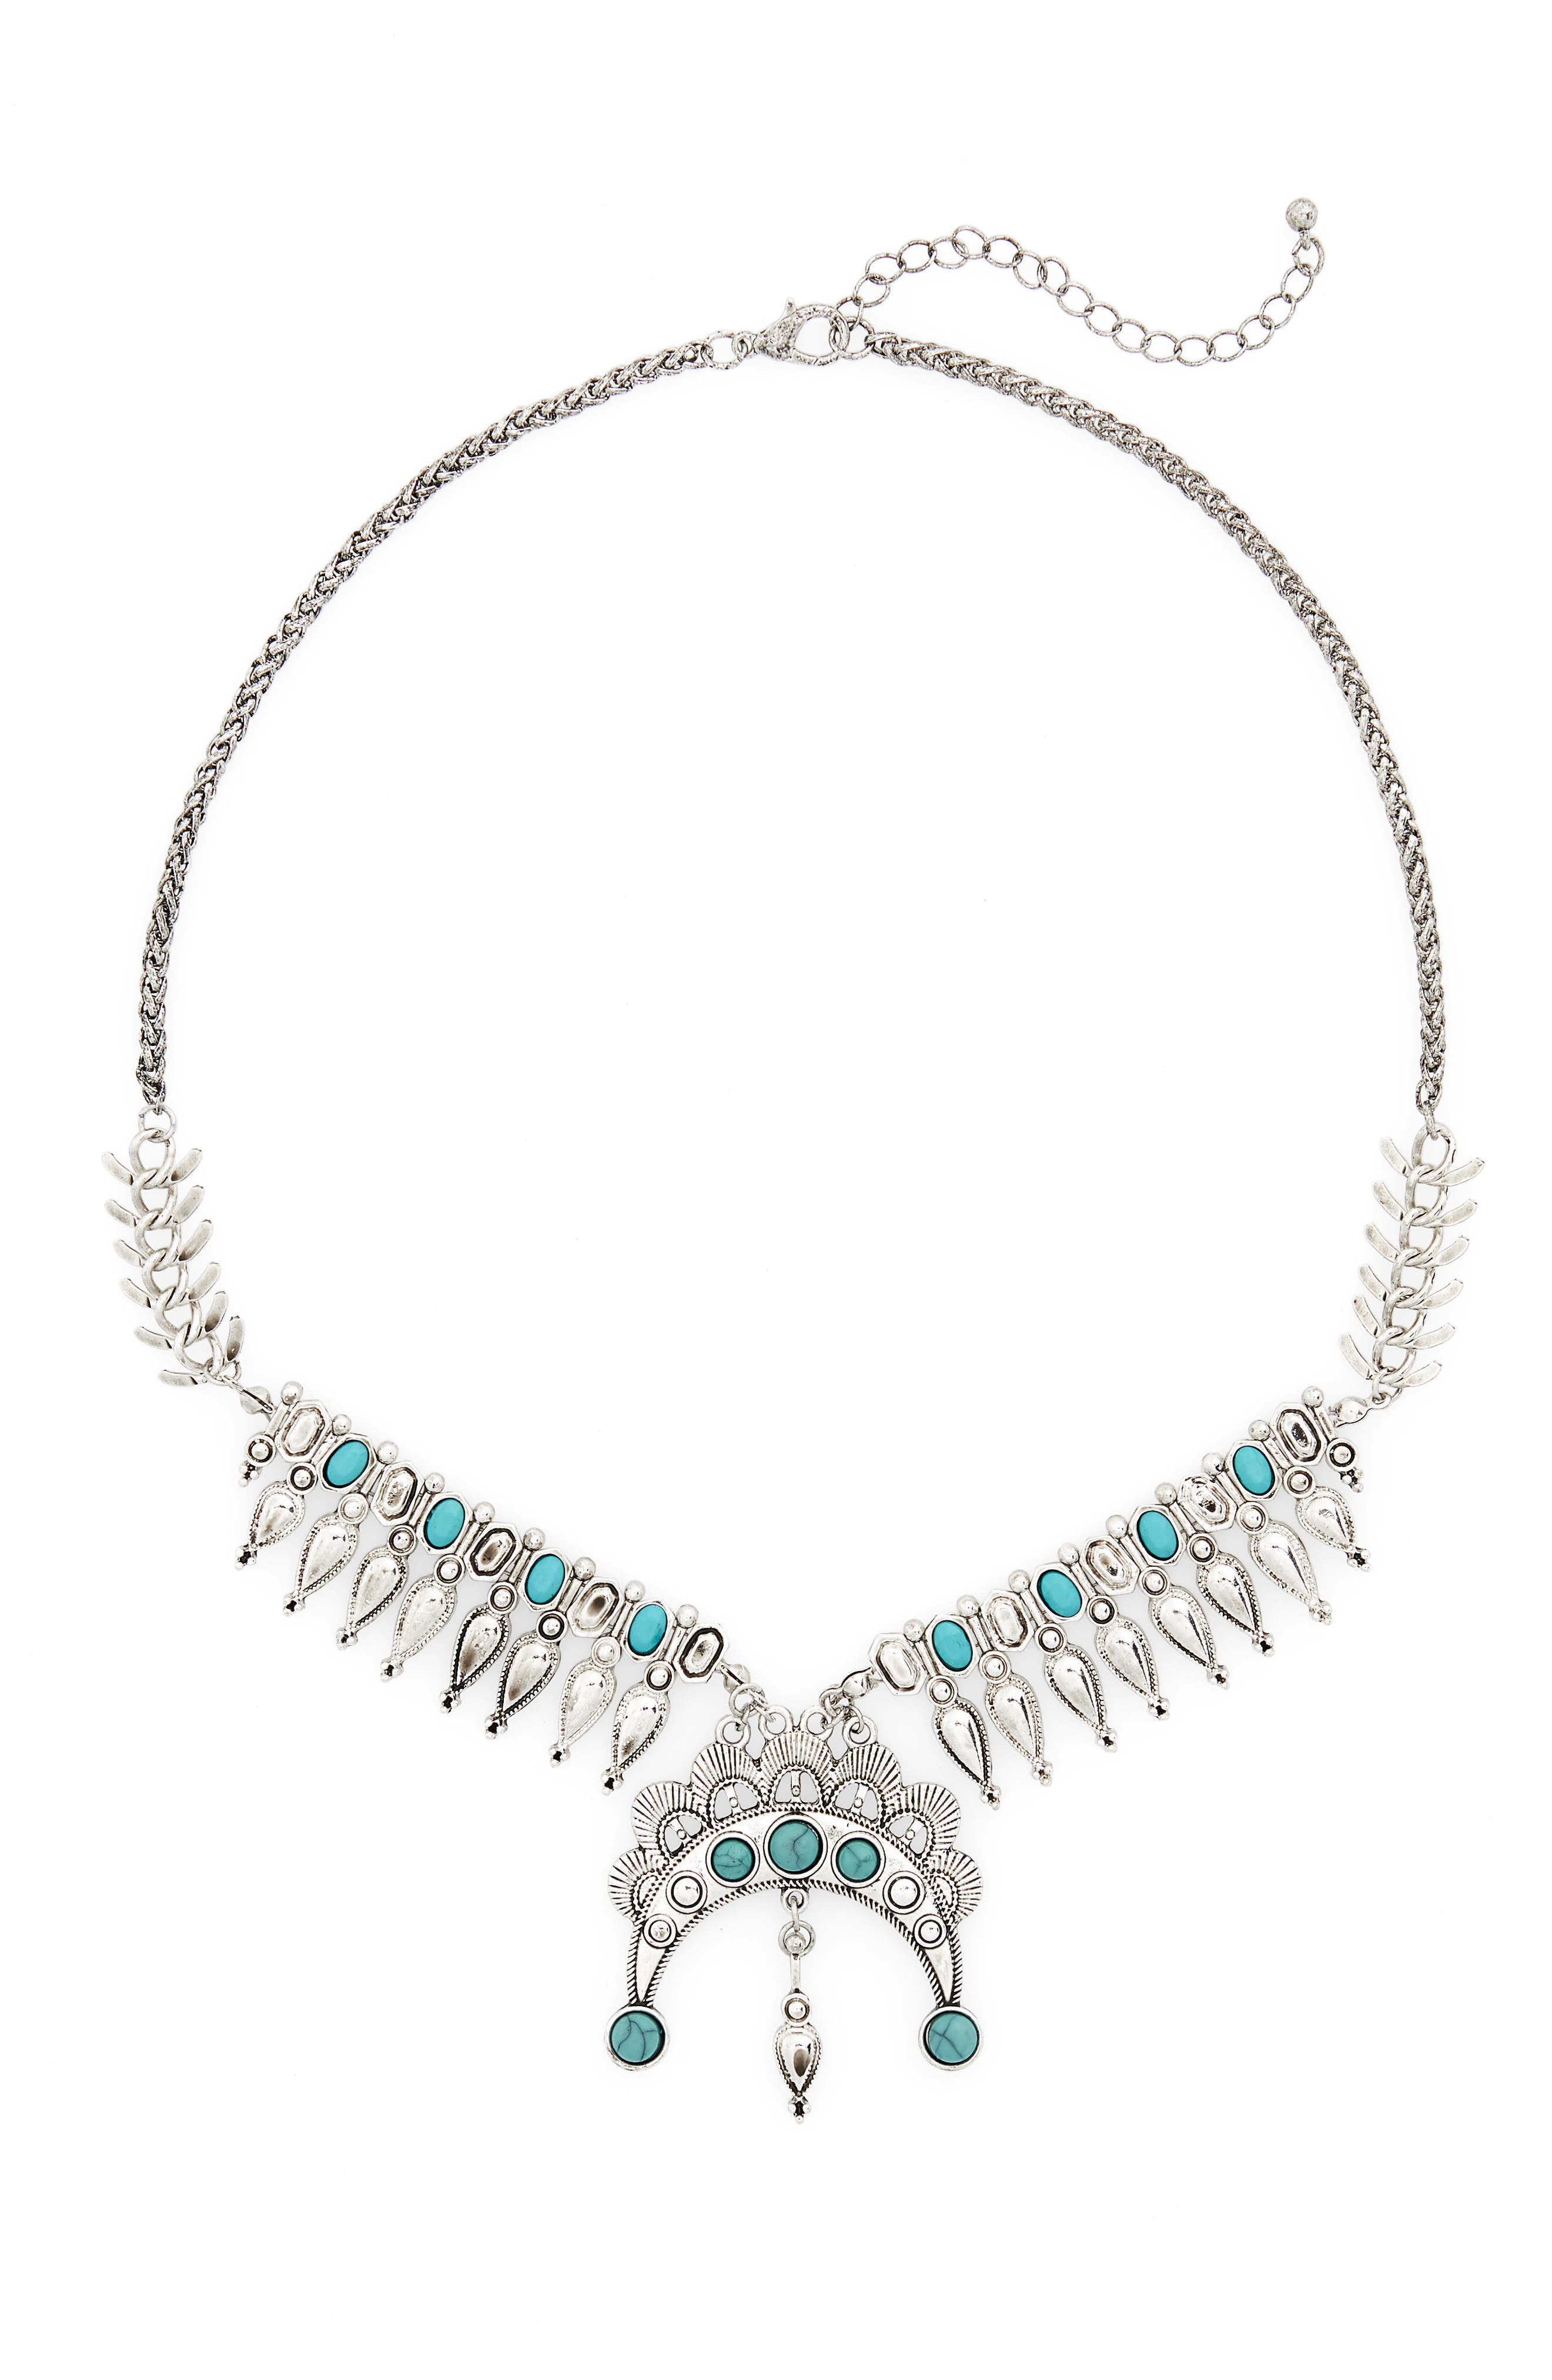 Western Crescent Statement Necklace,                             Main thumbnail 1, color,                             040